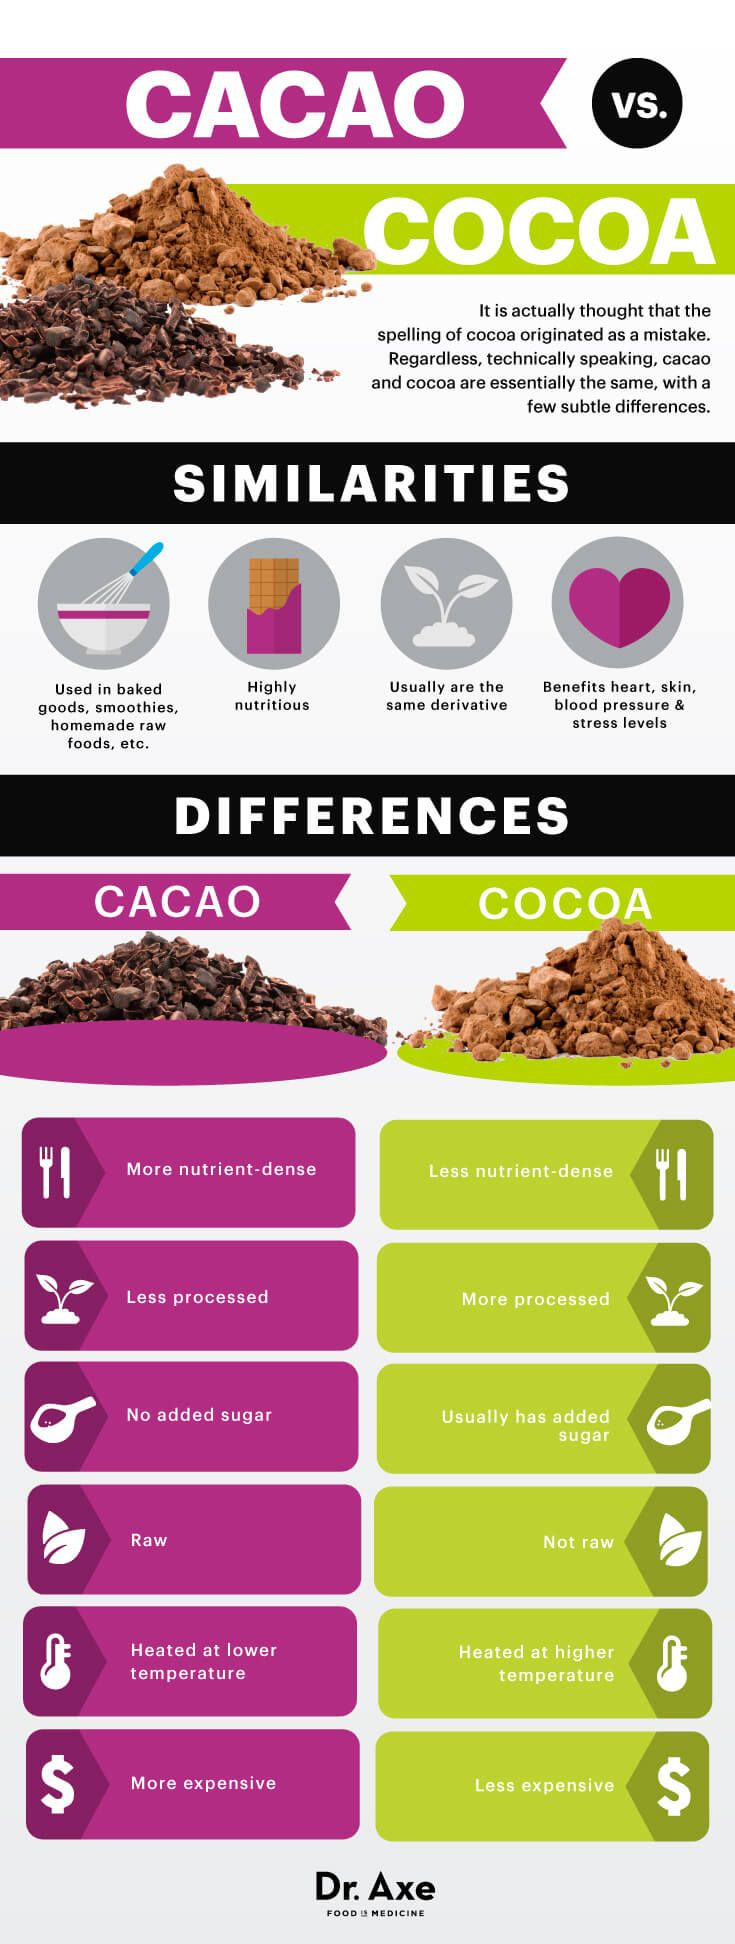 Cacao Nibs: Superfood that Boosts Energy and Burns Fat - Dr. Axe